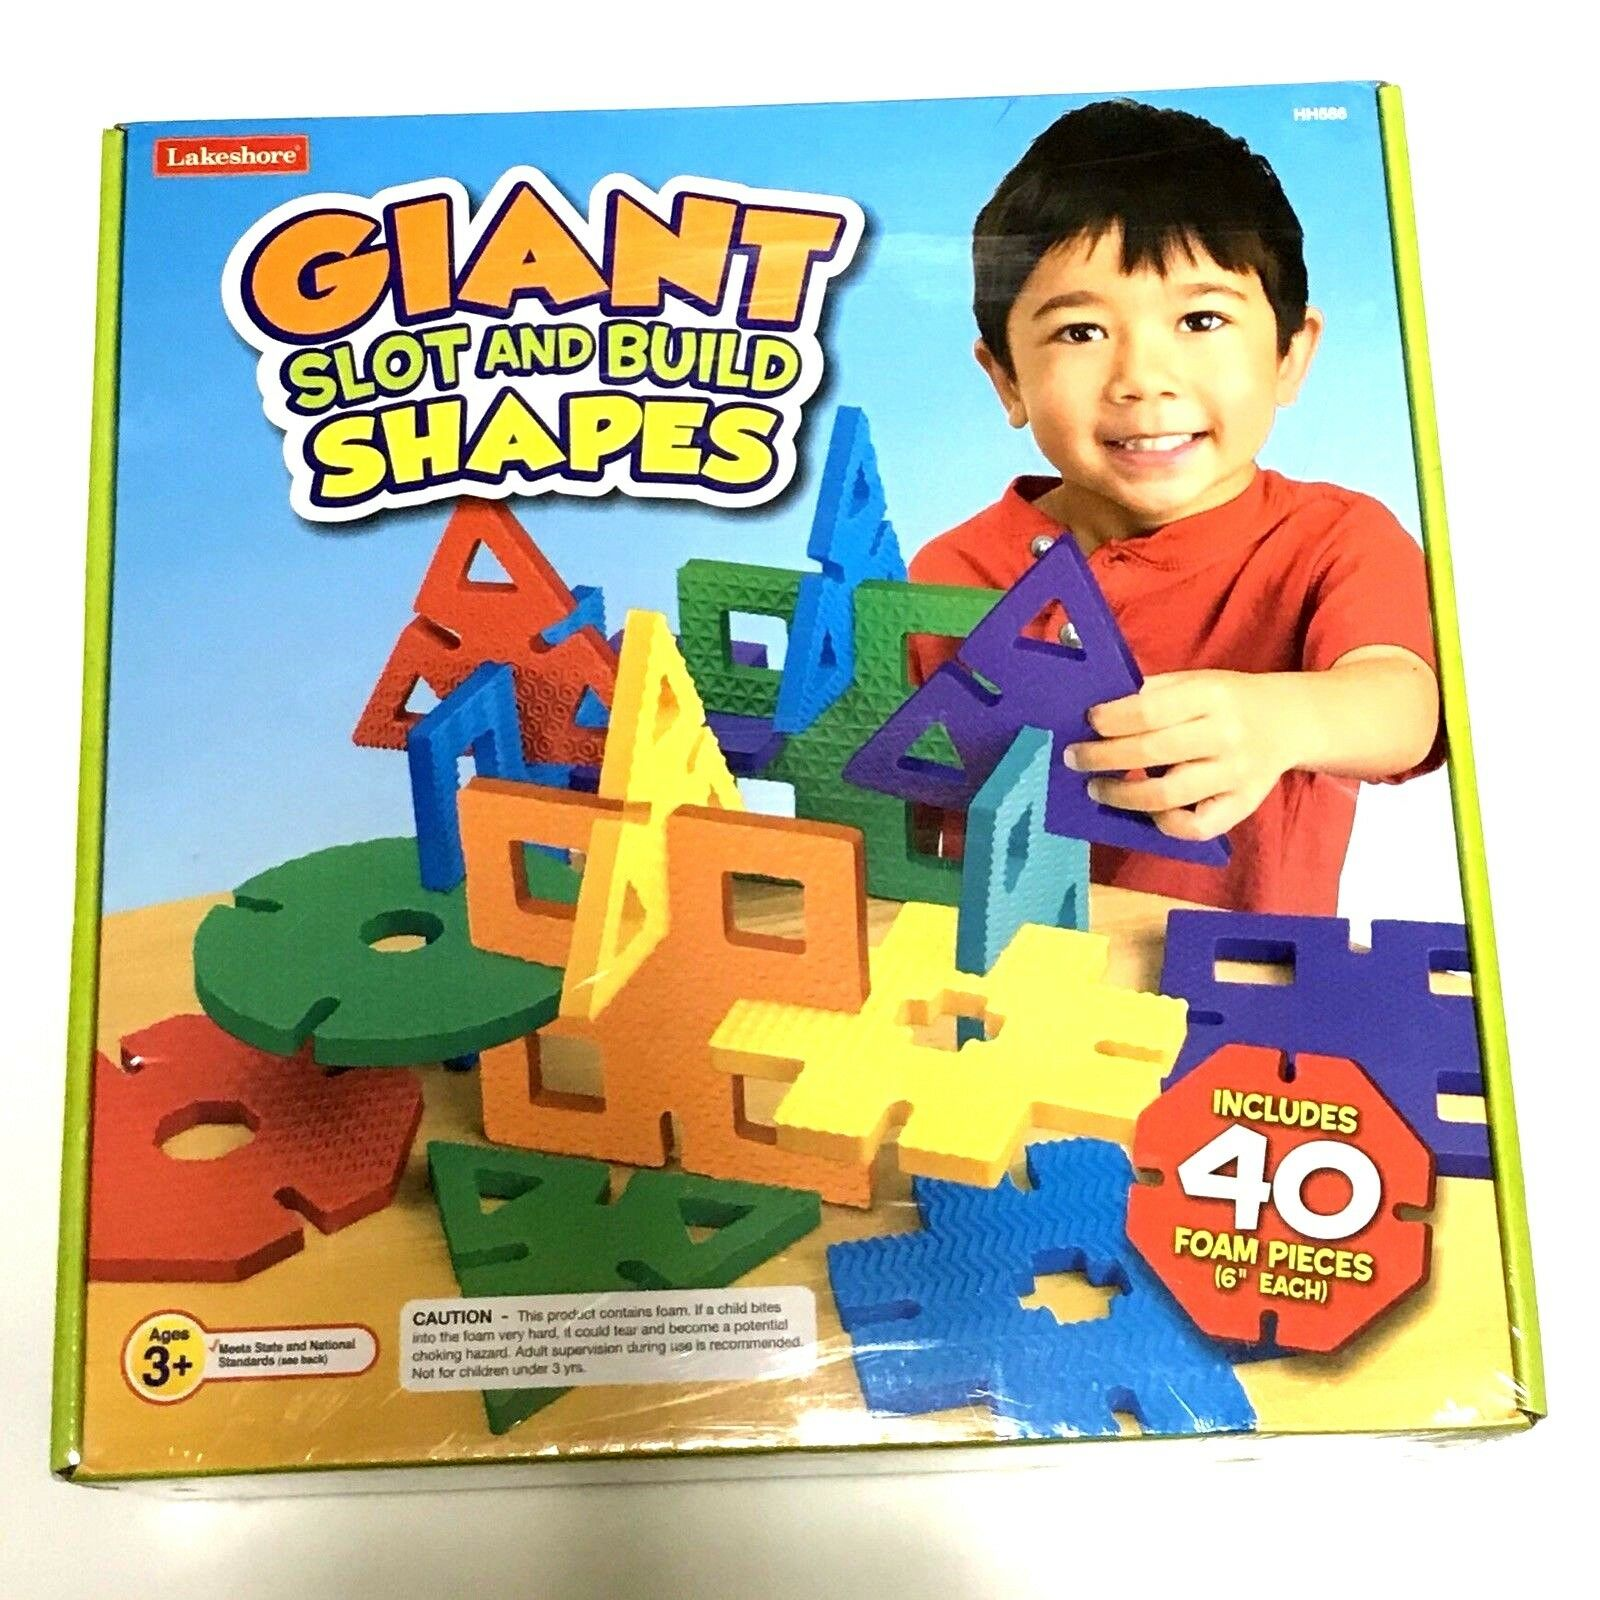 Lakeshore Giant Slot and Build Shapes Foam Building Toy 40 6